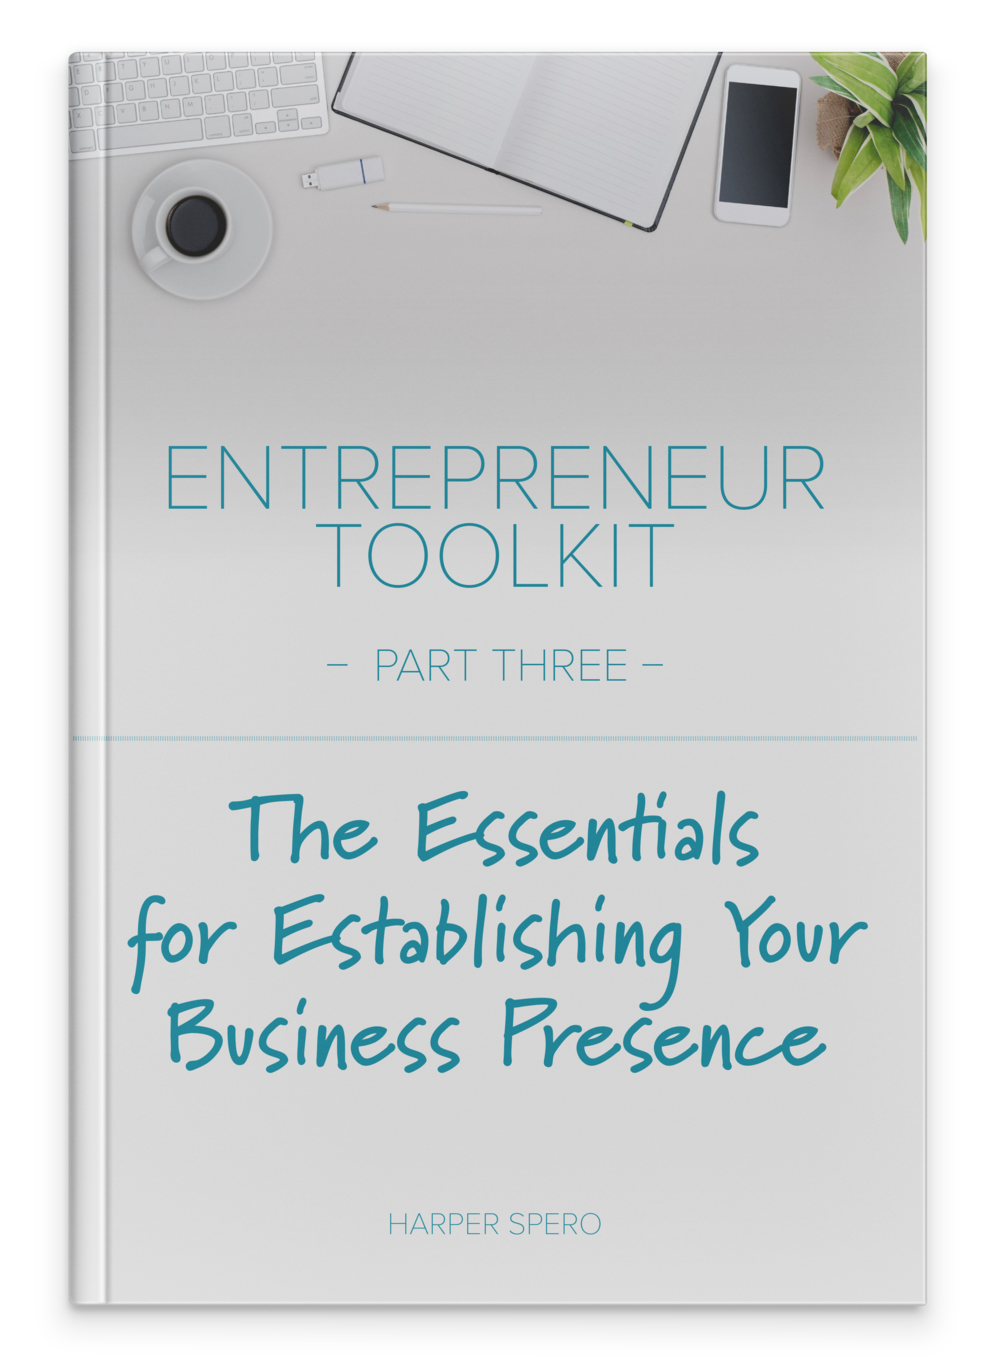 Entrepreneur Toolkit Part 3 Book Cover.png